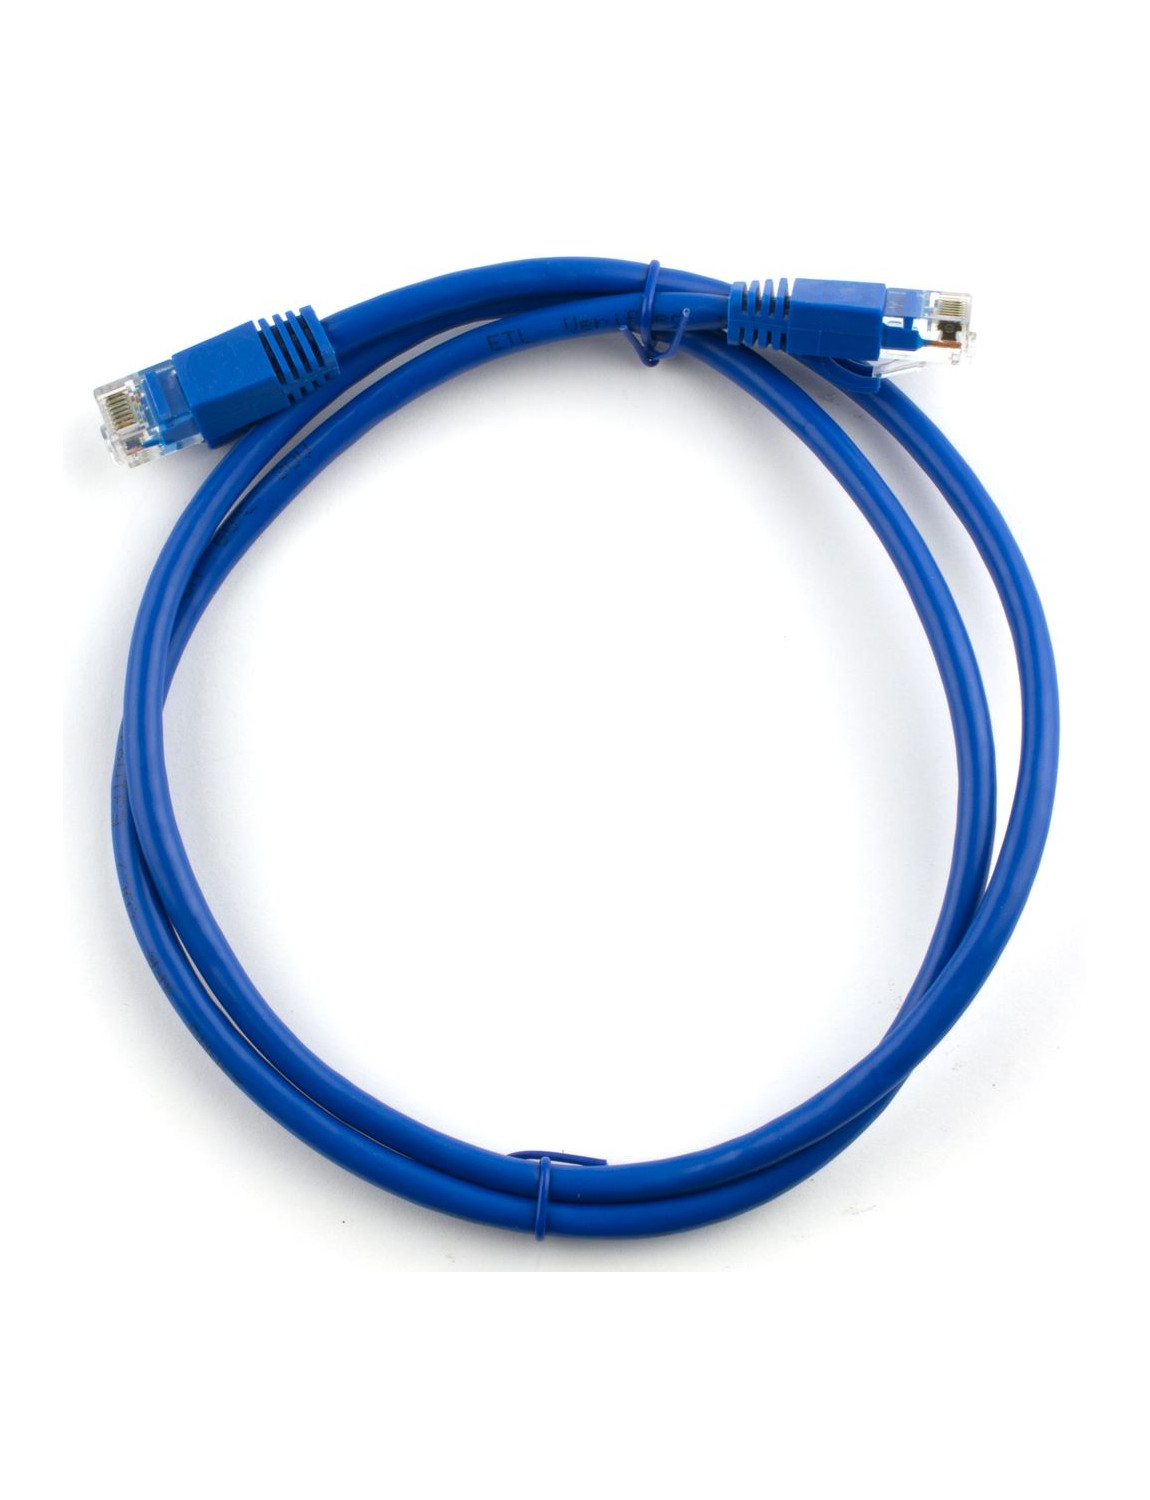 XPCABLE CAT5e UTP PATCH CORD 3M